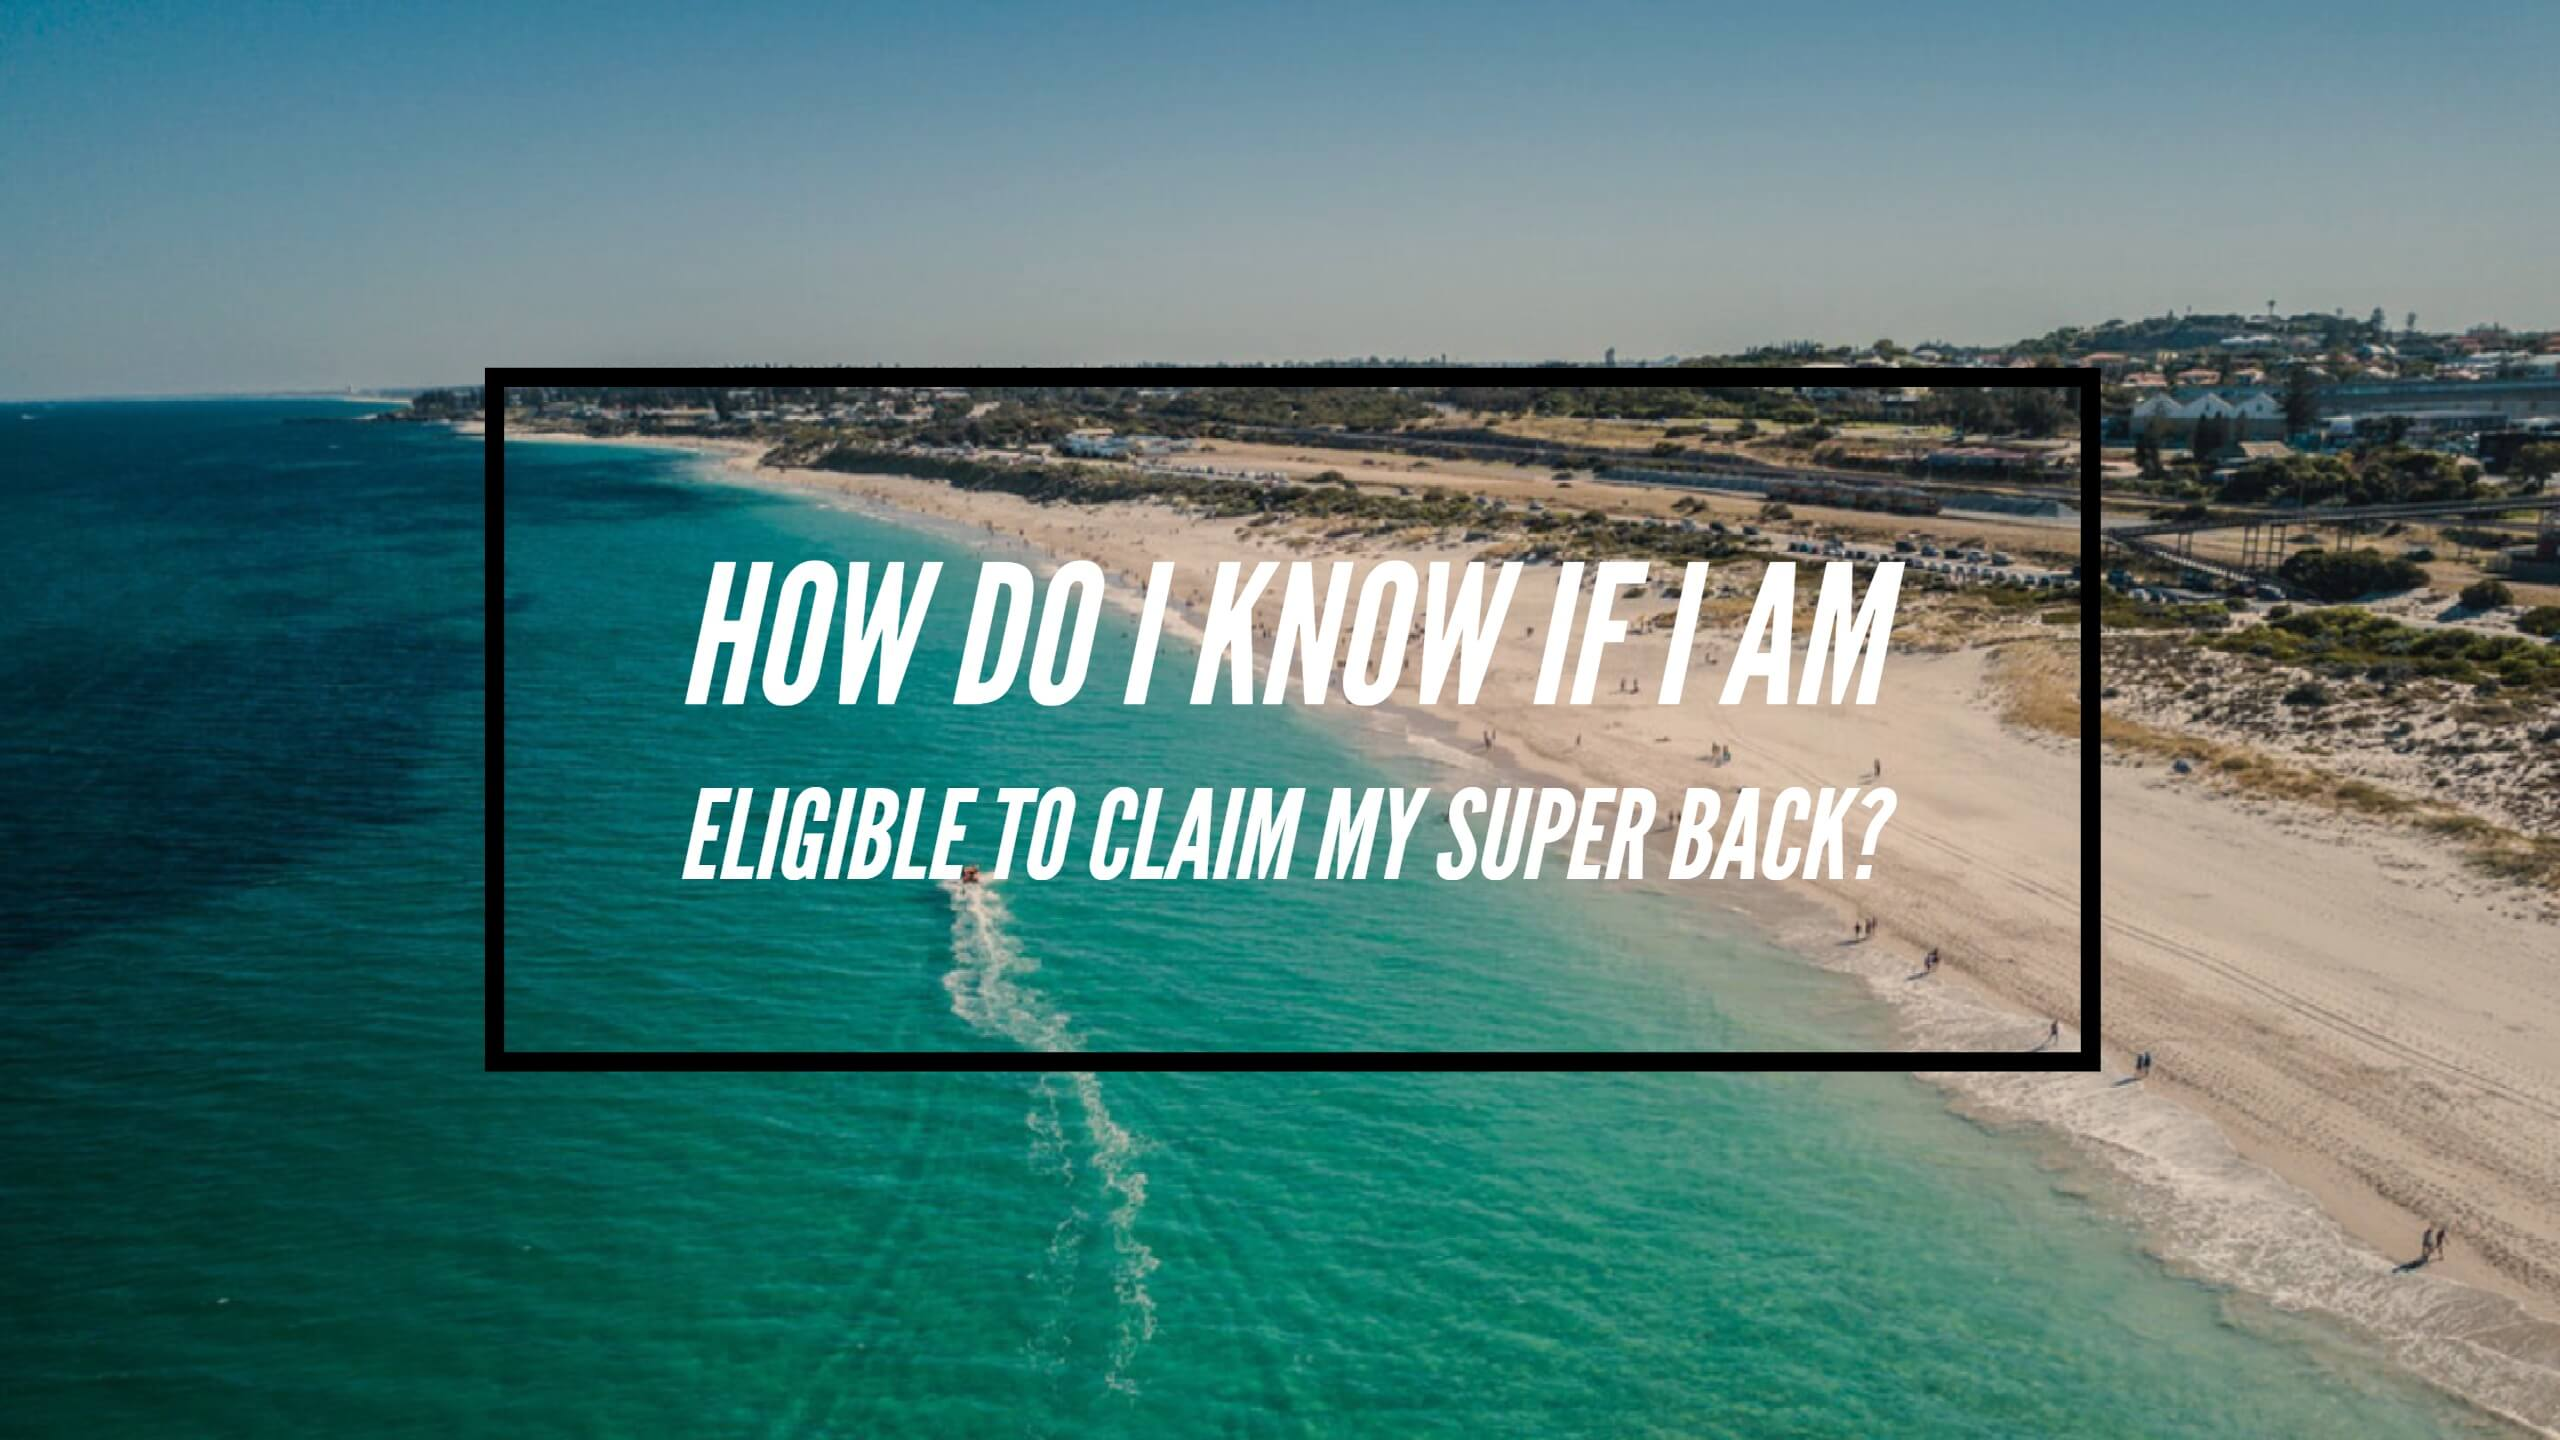 How do I know if I am eligible to claim my super back - claiming your superannuation back